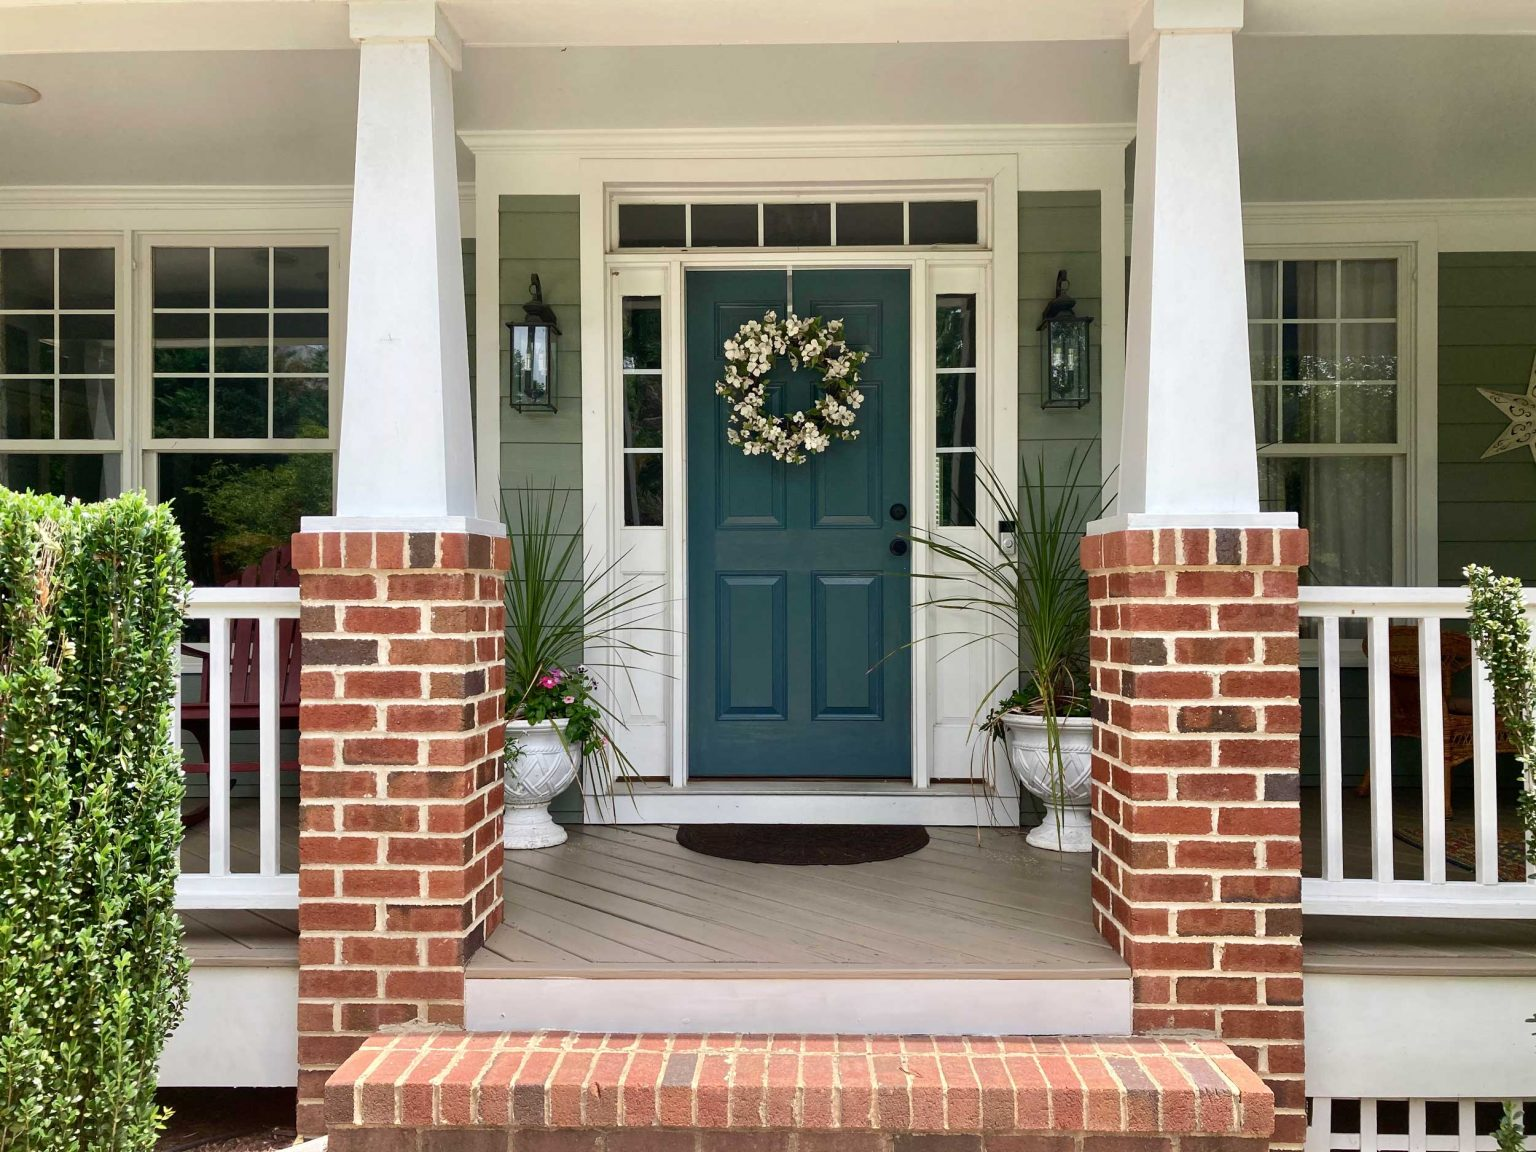 Exterior Paint Job in Cary - painted door and porch